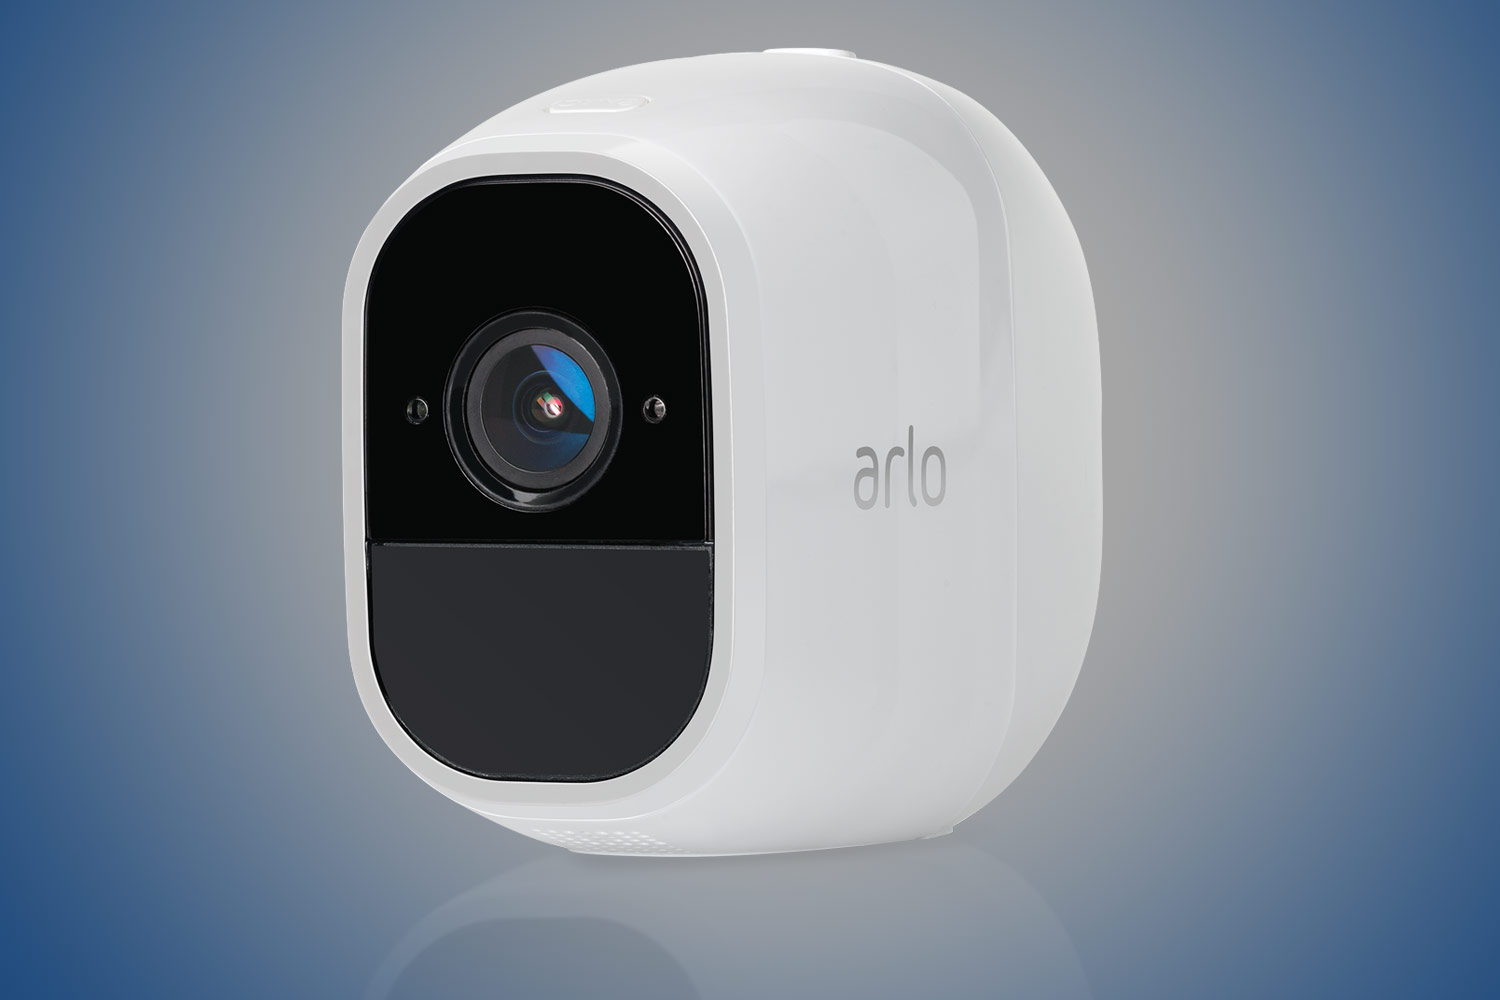 netgear updates its smart home camera line with the arlo pro 2. Black Bedroom Furniture Sets. Home Design Ideas